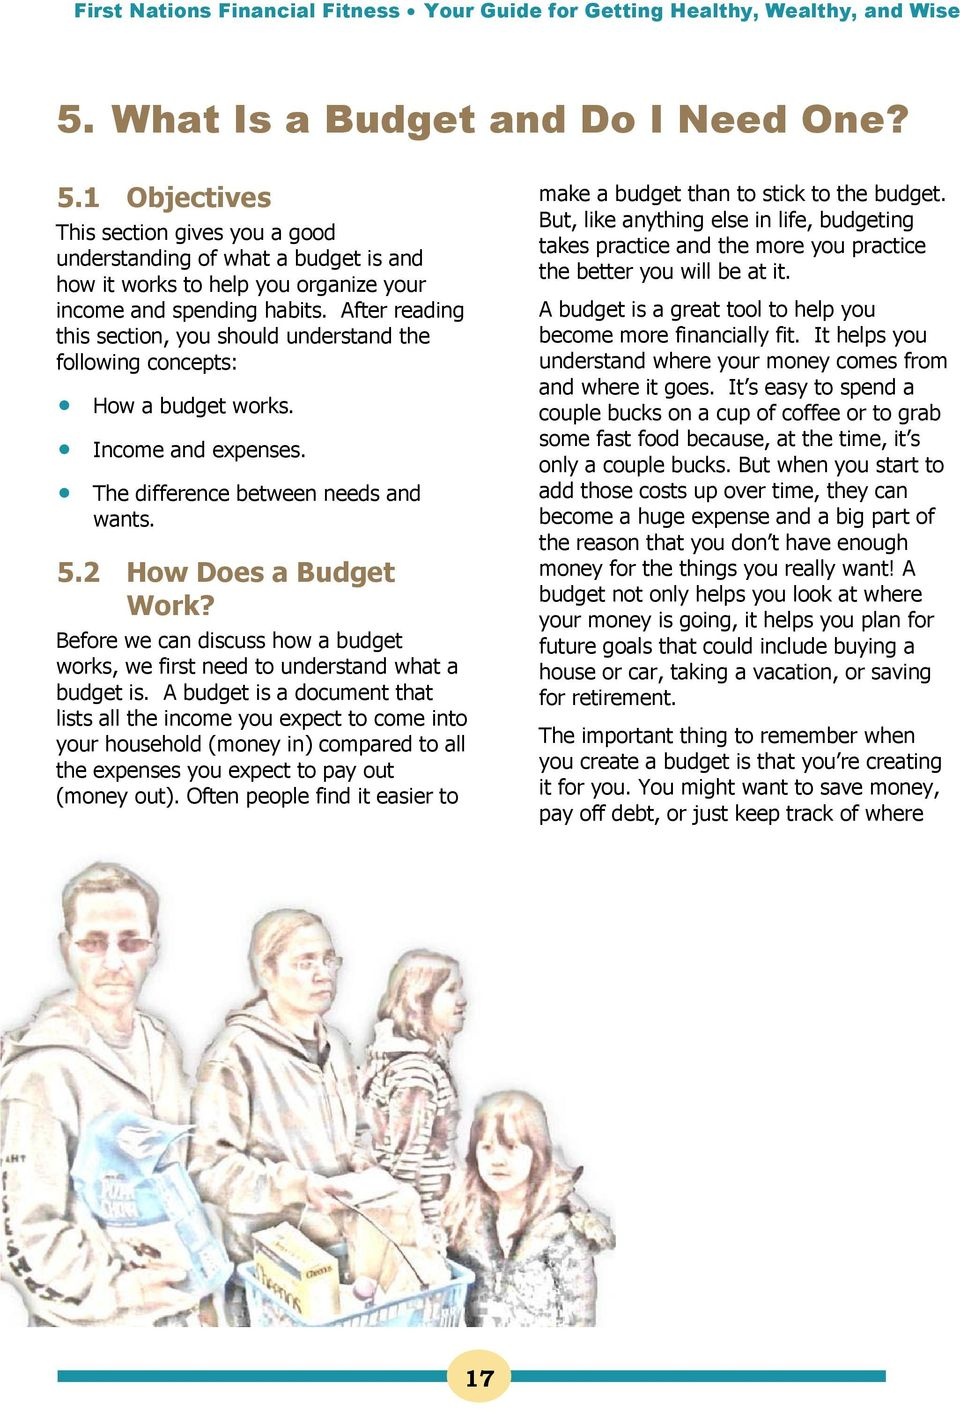 Before we can discuss how a budget works, we first need to understand what a budget is.